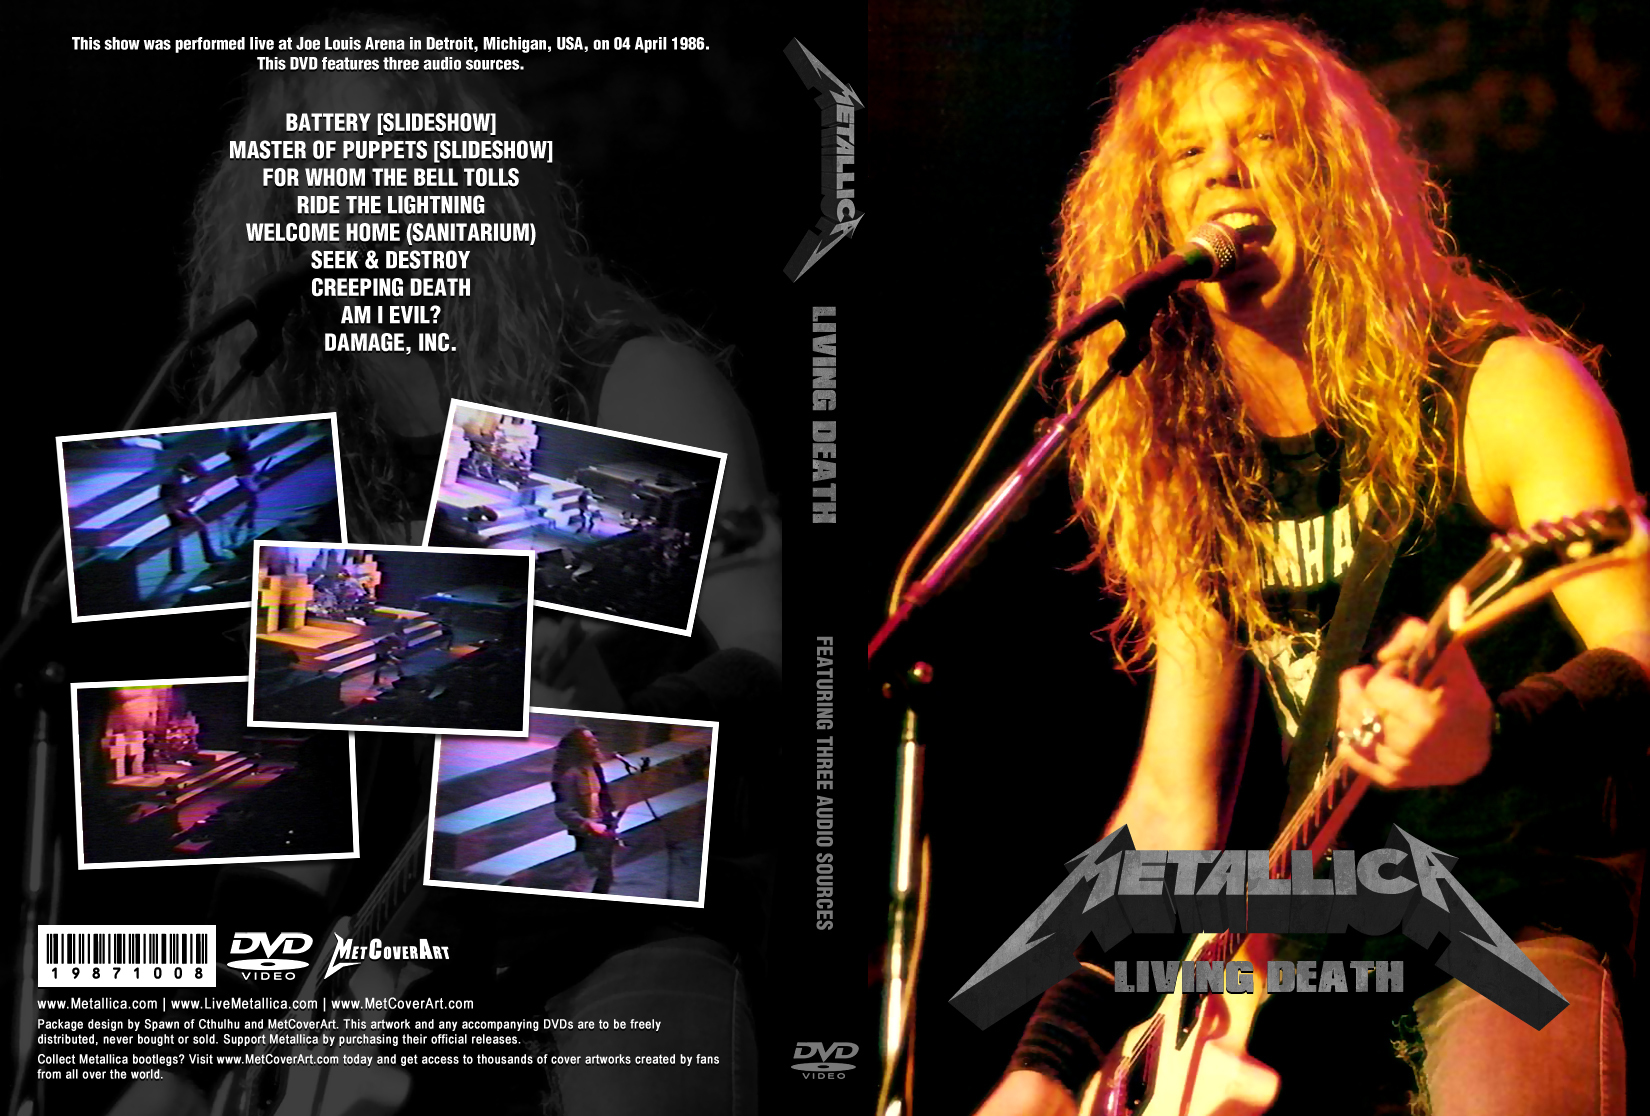 METALLICA - Metallica Photo (19630367) - Fanpop